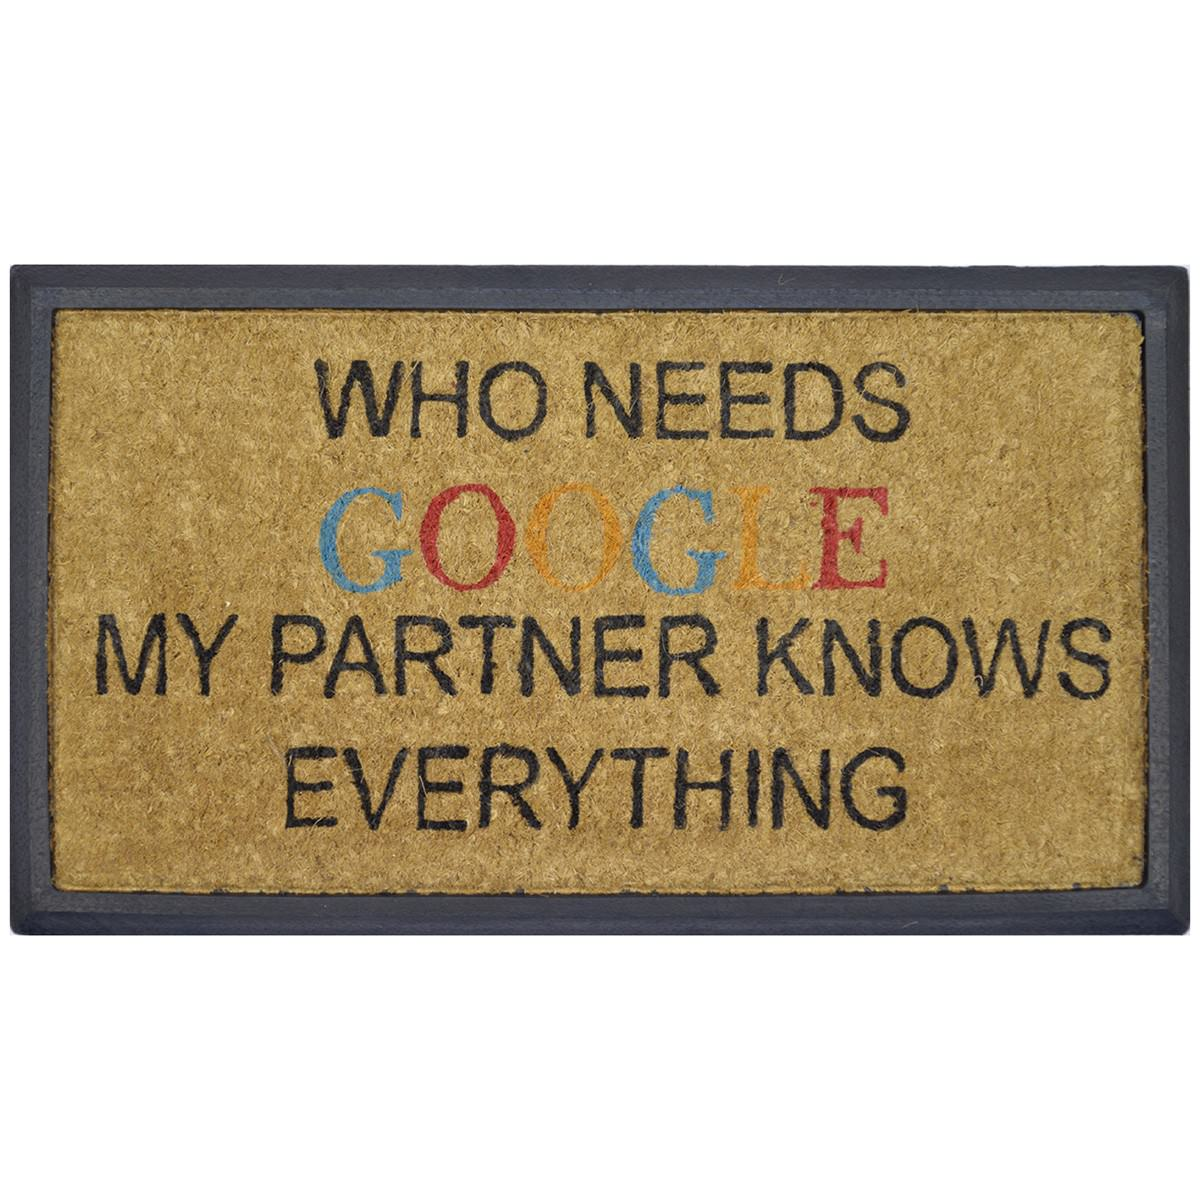 """My Partner Knows Everything"" Rubber Framed Coir Doormat, 70x40cm"